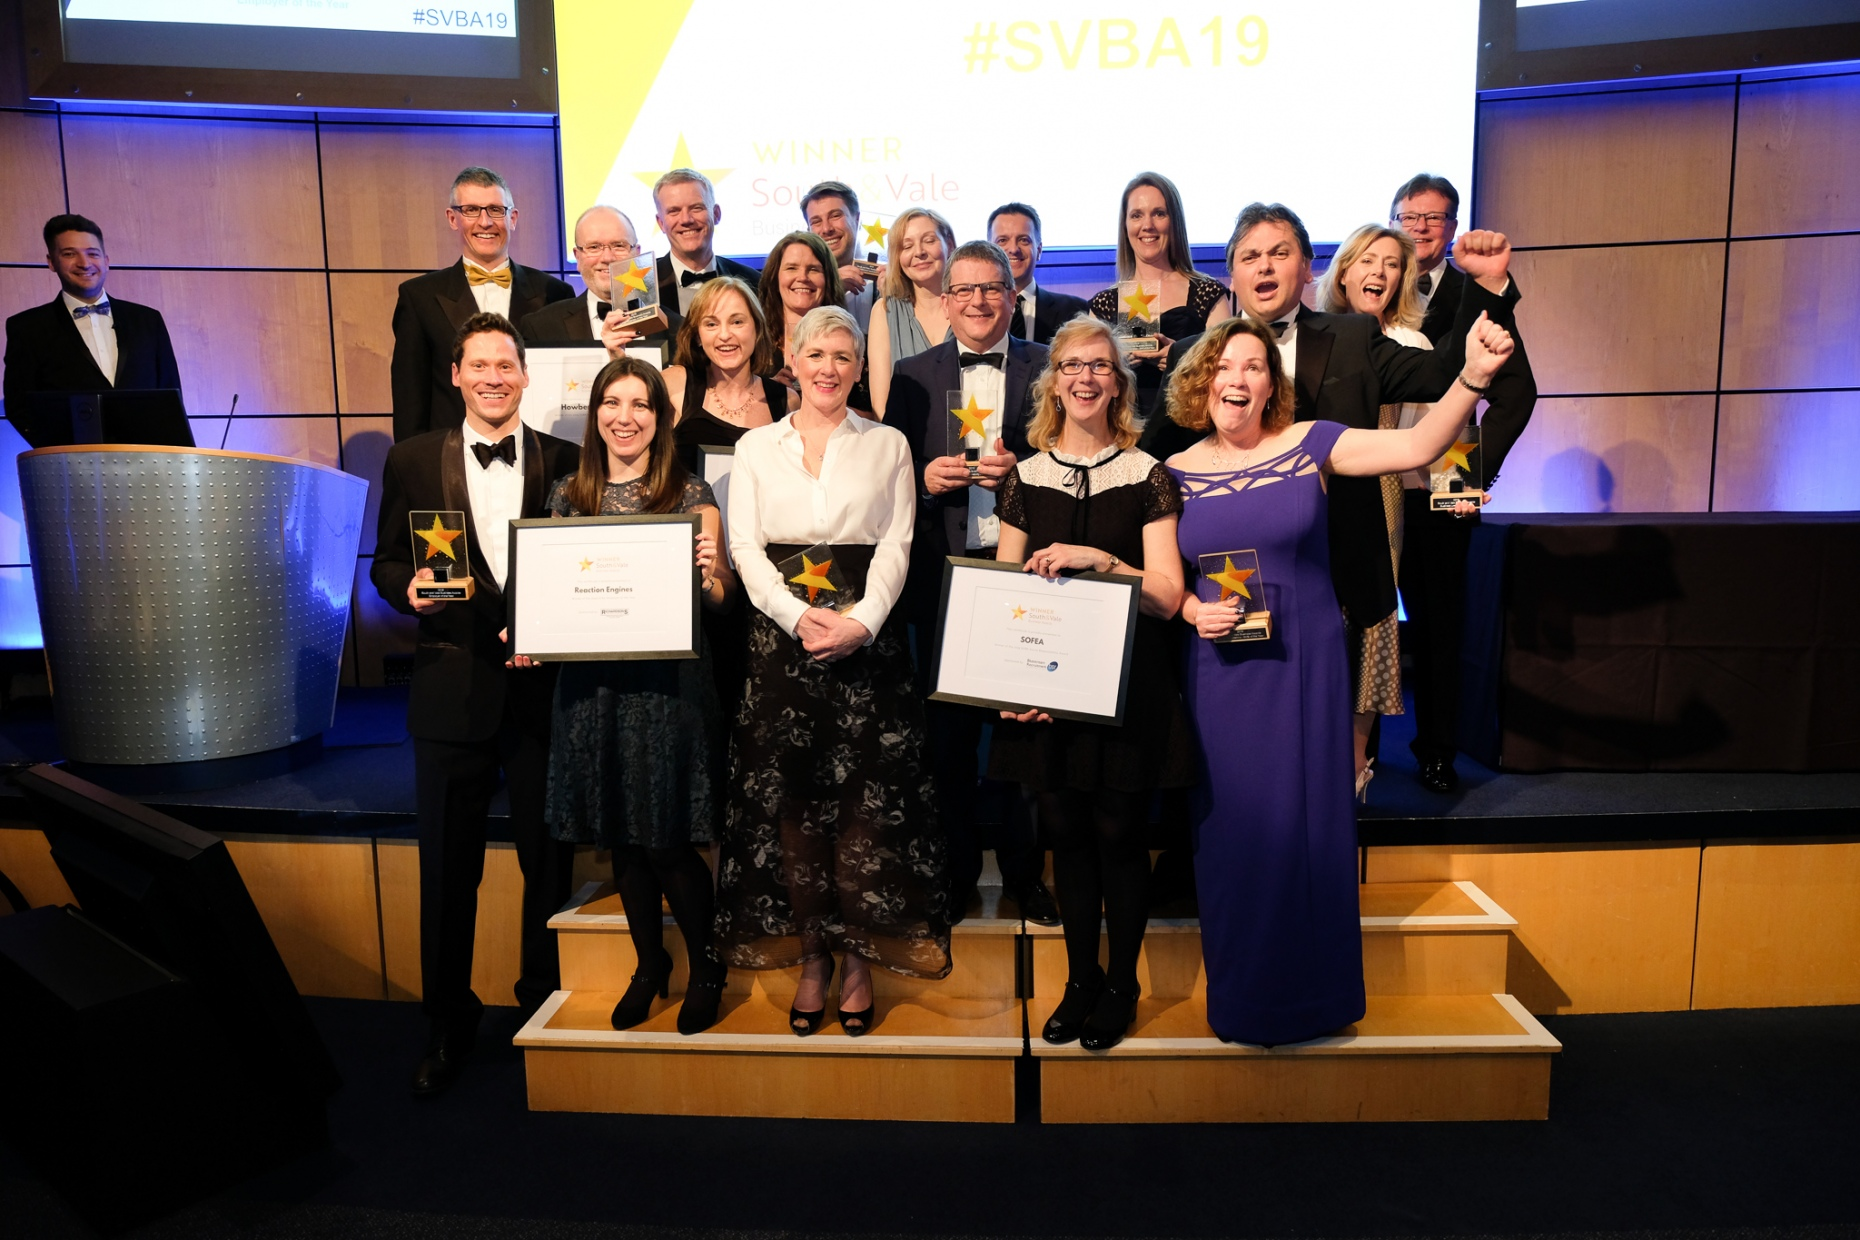 SVBA Business Awards 2019 Social Media Format (163 of 166)